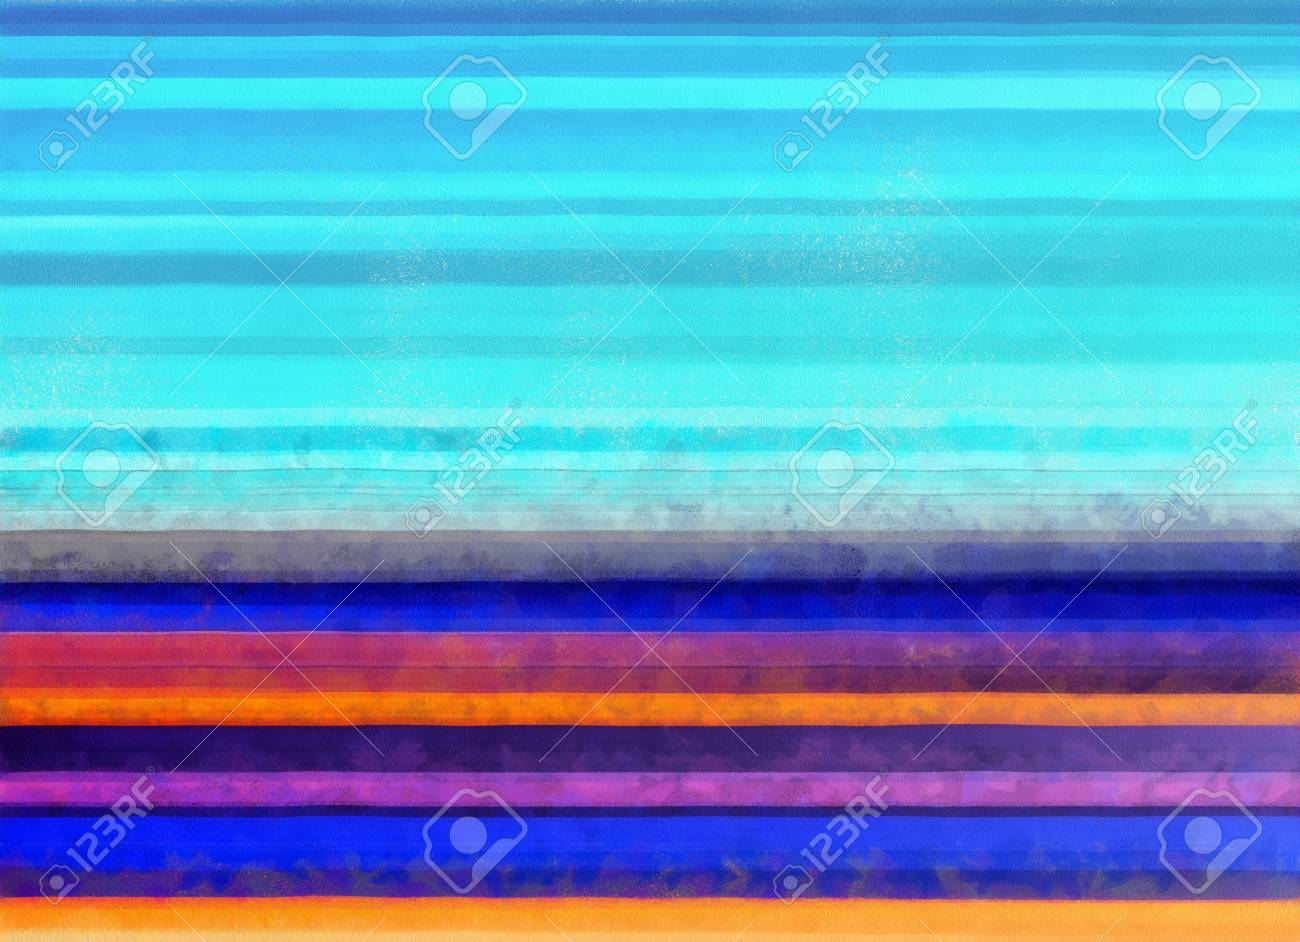 Abstract striped background Stock Photo - 20026278